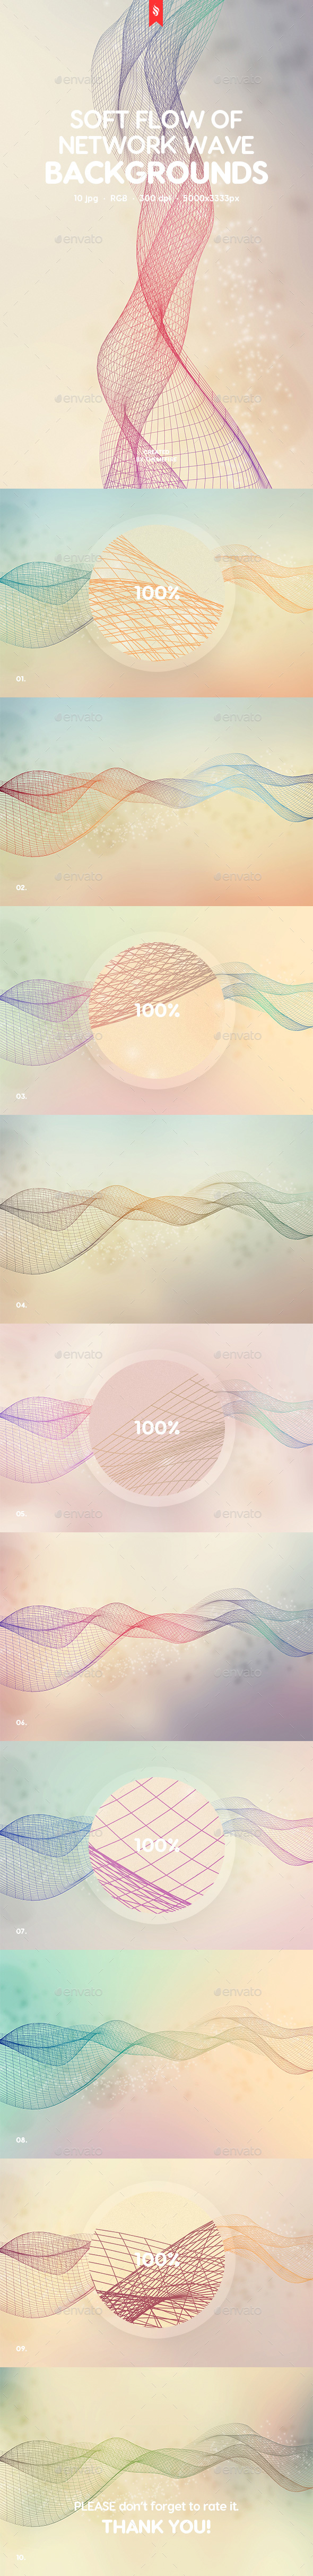 Soft Flow of Network Wave Backgrounds - Abstract Backgrounds